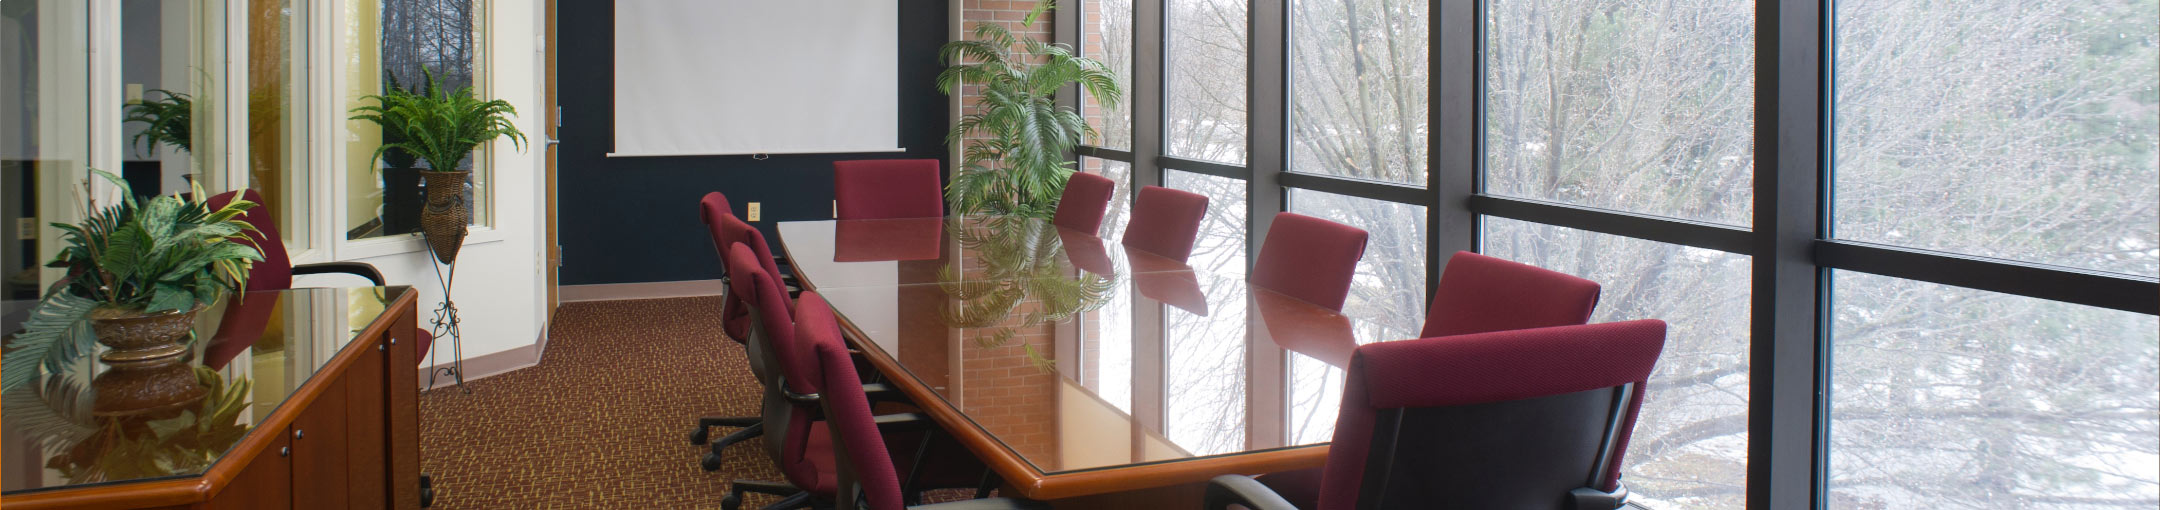 An interior view of a conference room in the Venture Creations building on Tech Park Drive.